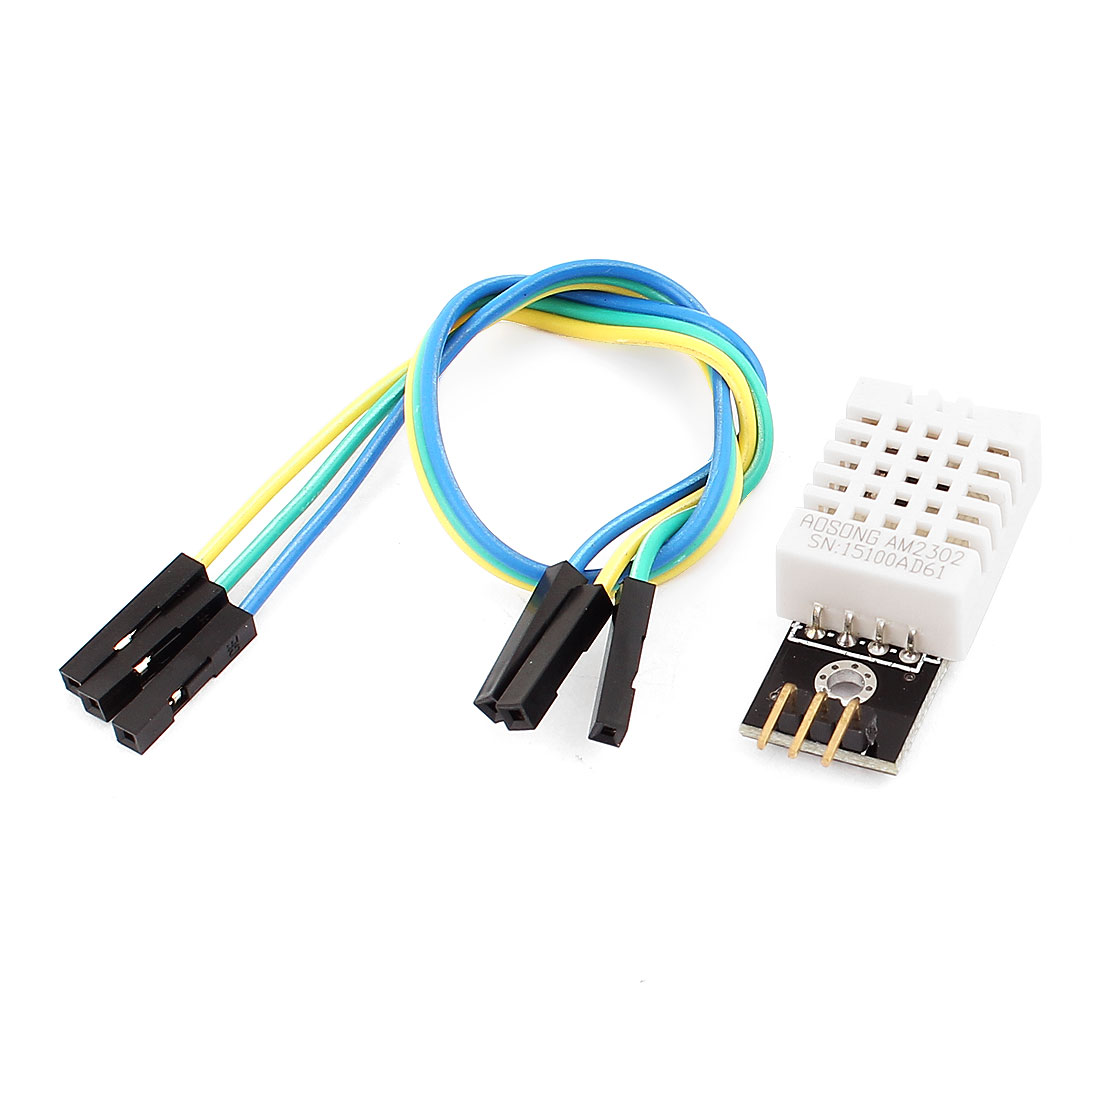 AM2302 Digital Thermometer Temperature Humidity Sensor Module w Cable